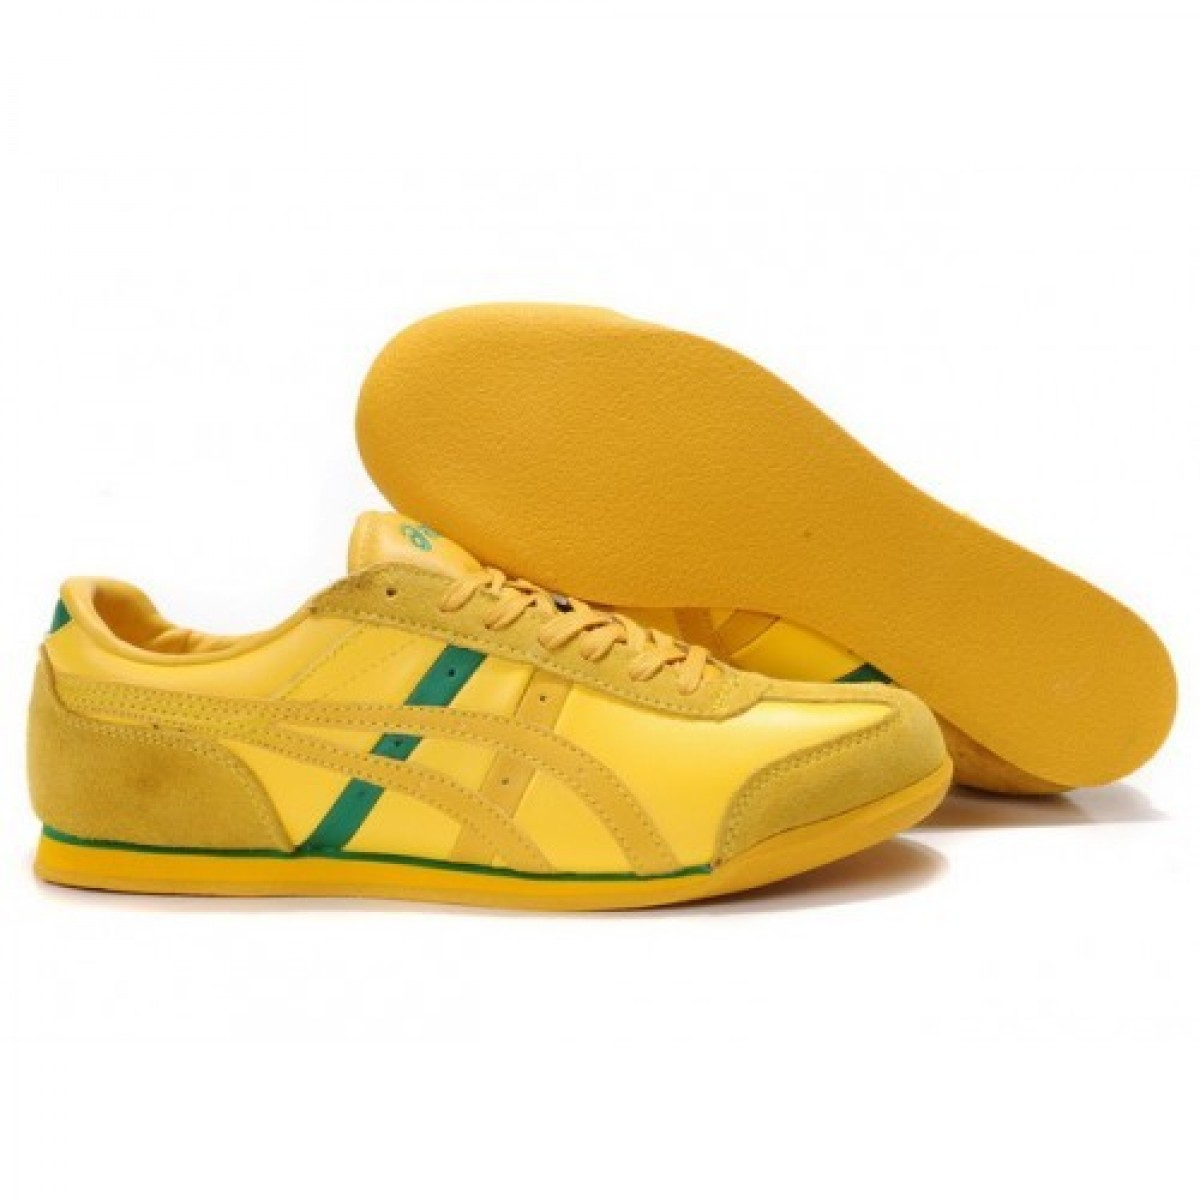 SL7256 Soldes Asics Revolve Le Chaussures Yello verts 68105698 Pas Cher